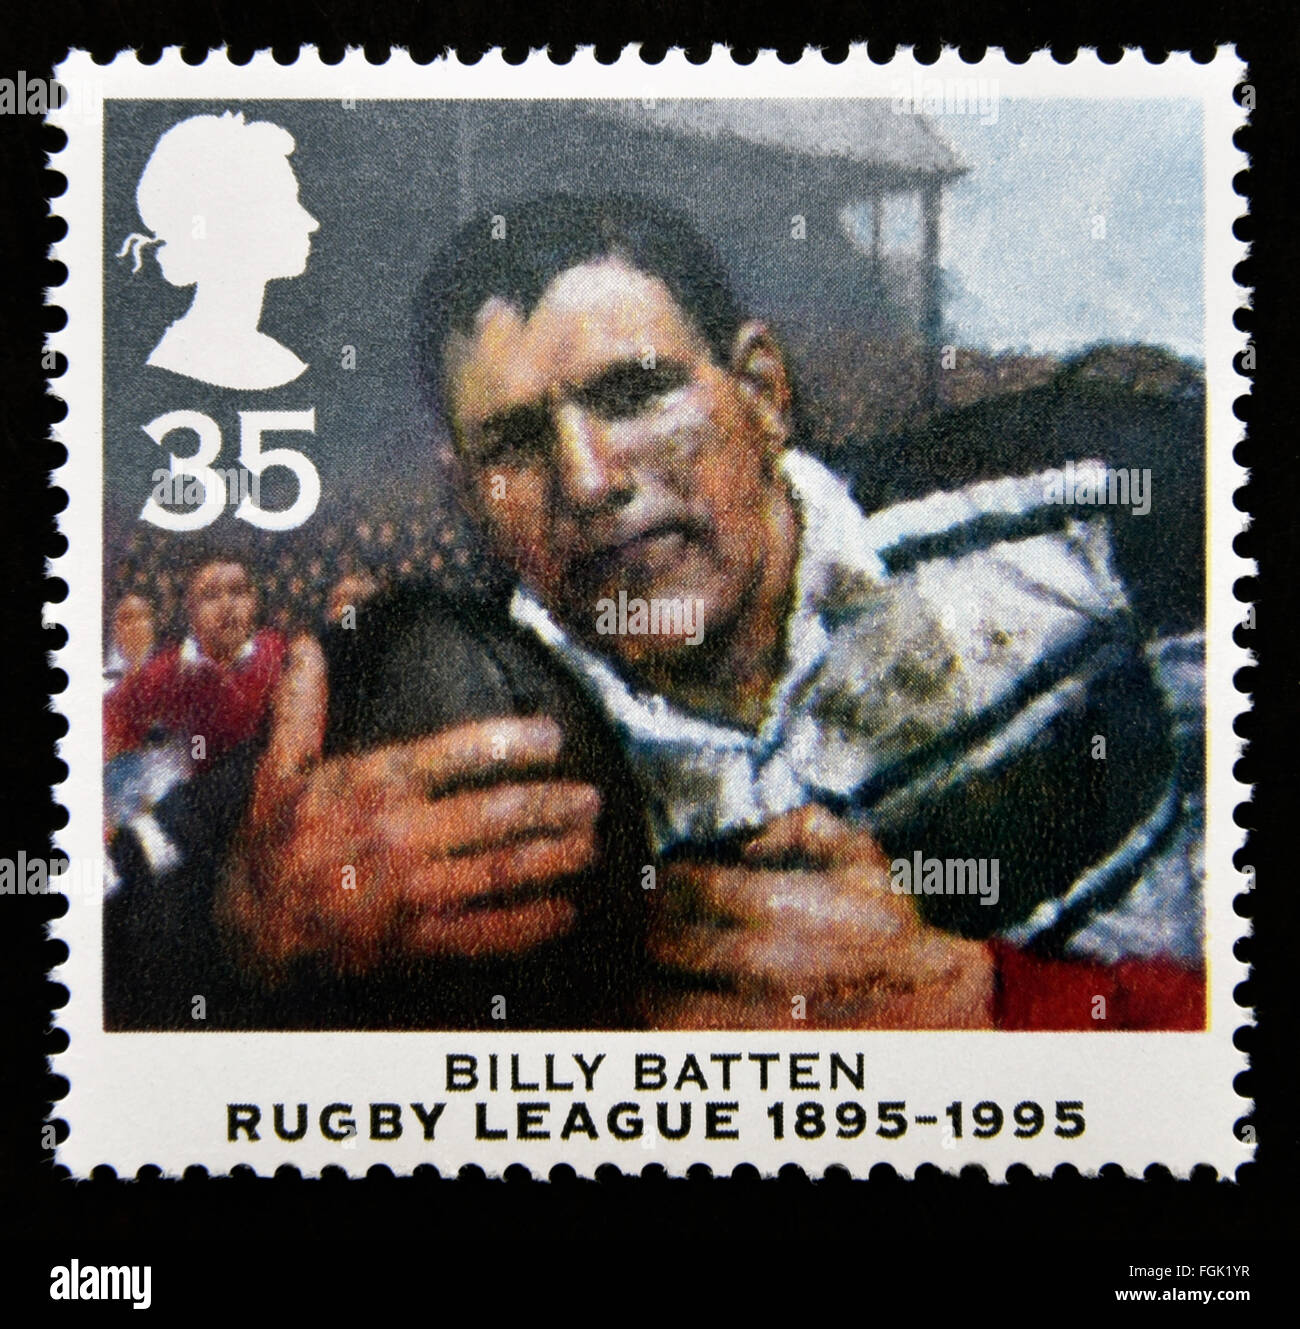 Postage stamp. Great Britain. Queen Elizabeth II. 1995. Centenary of Rugby League. 1895-1995. Billy Batten. 35p. Stock Photo